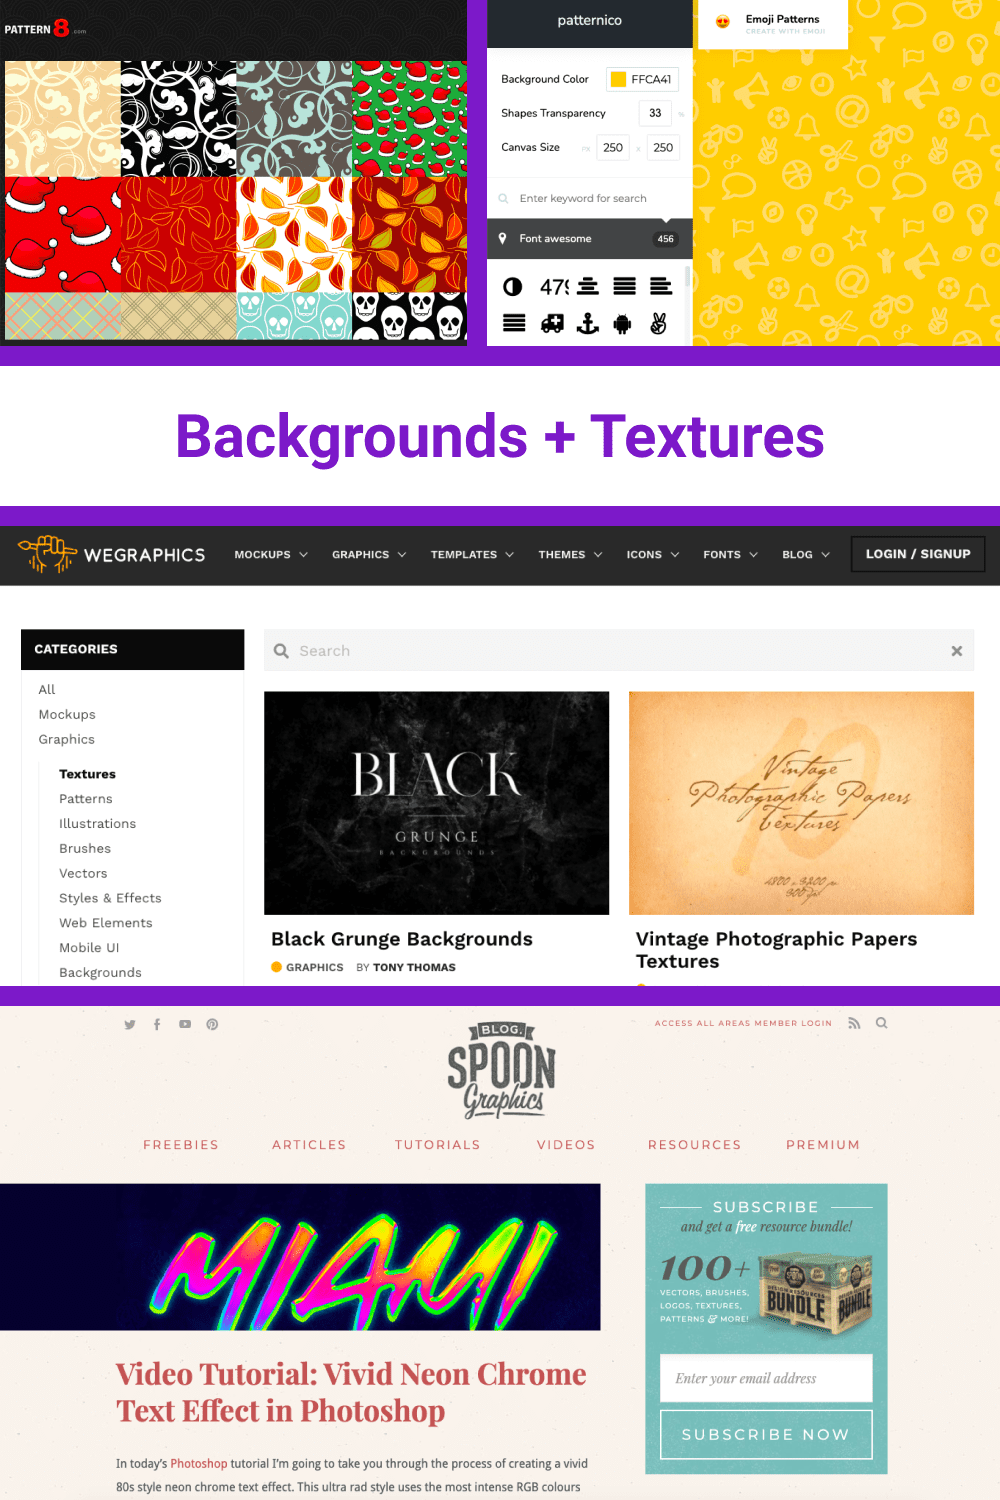 A big collection of backgrounds and textures.